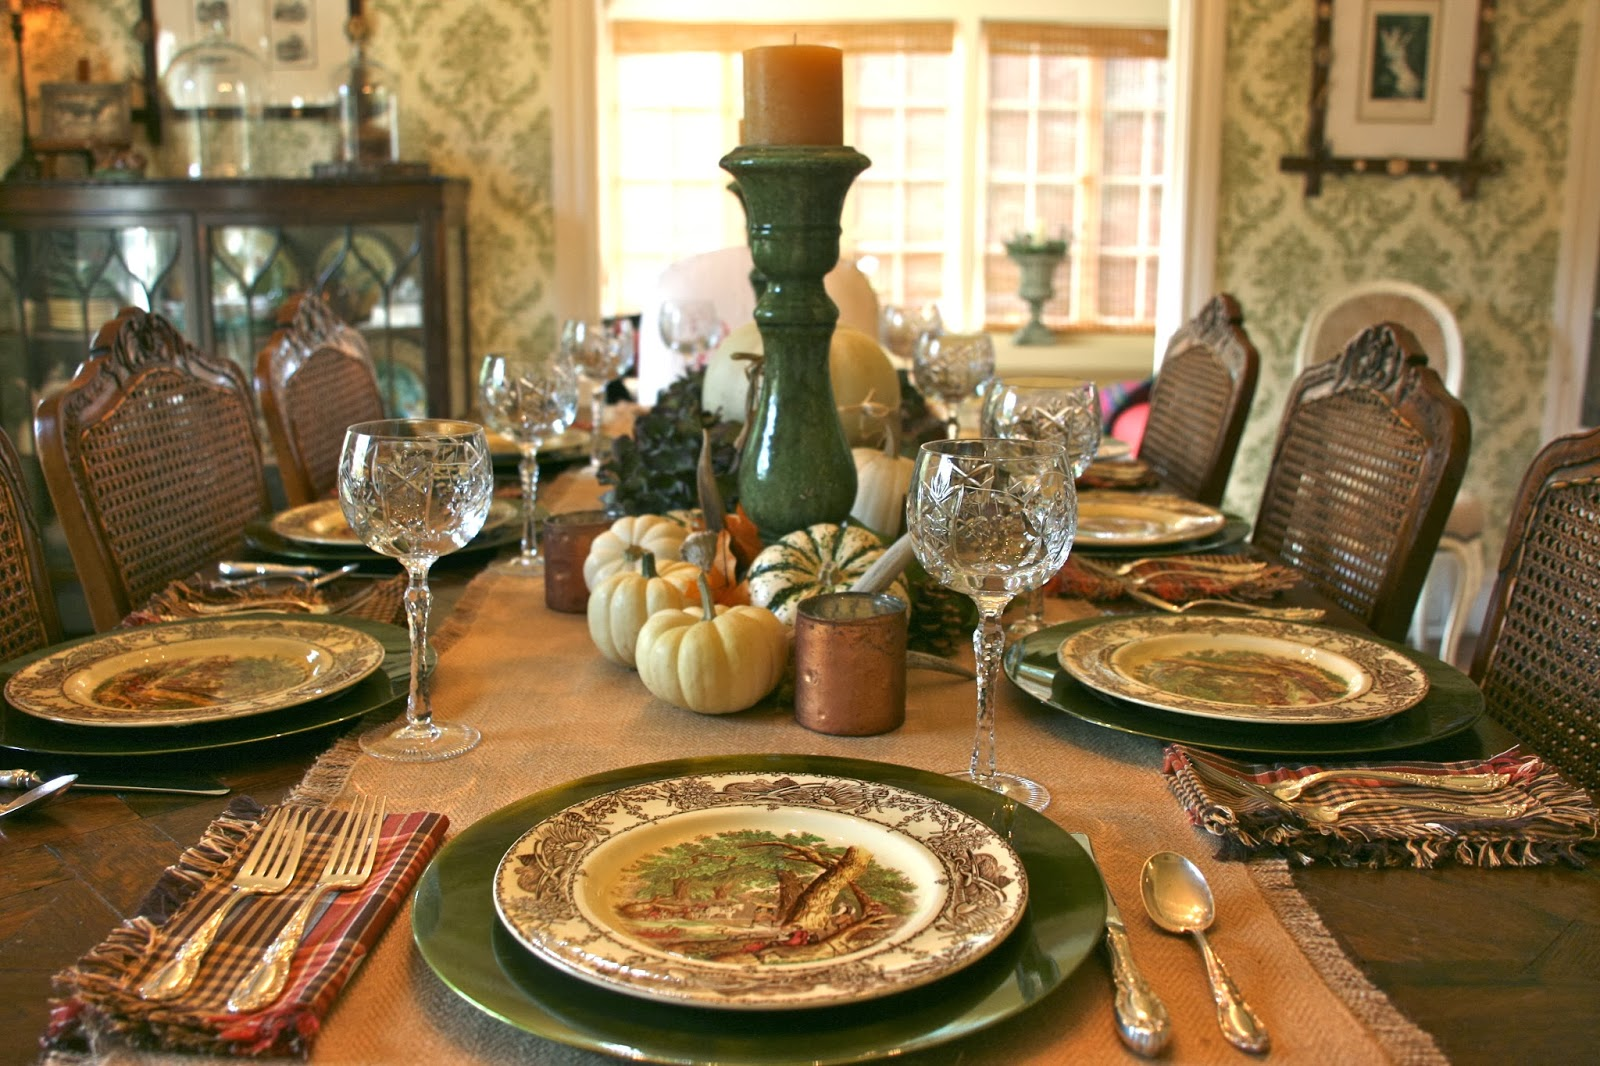 ... traditional Thanksgiving turkey plates. I opted instead to set the table with one of my favorite patterns Rural Scenes by A. J. Wilkinson. & vignette design: November 2013